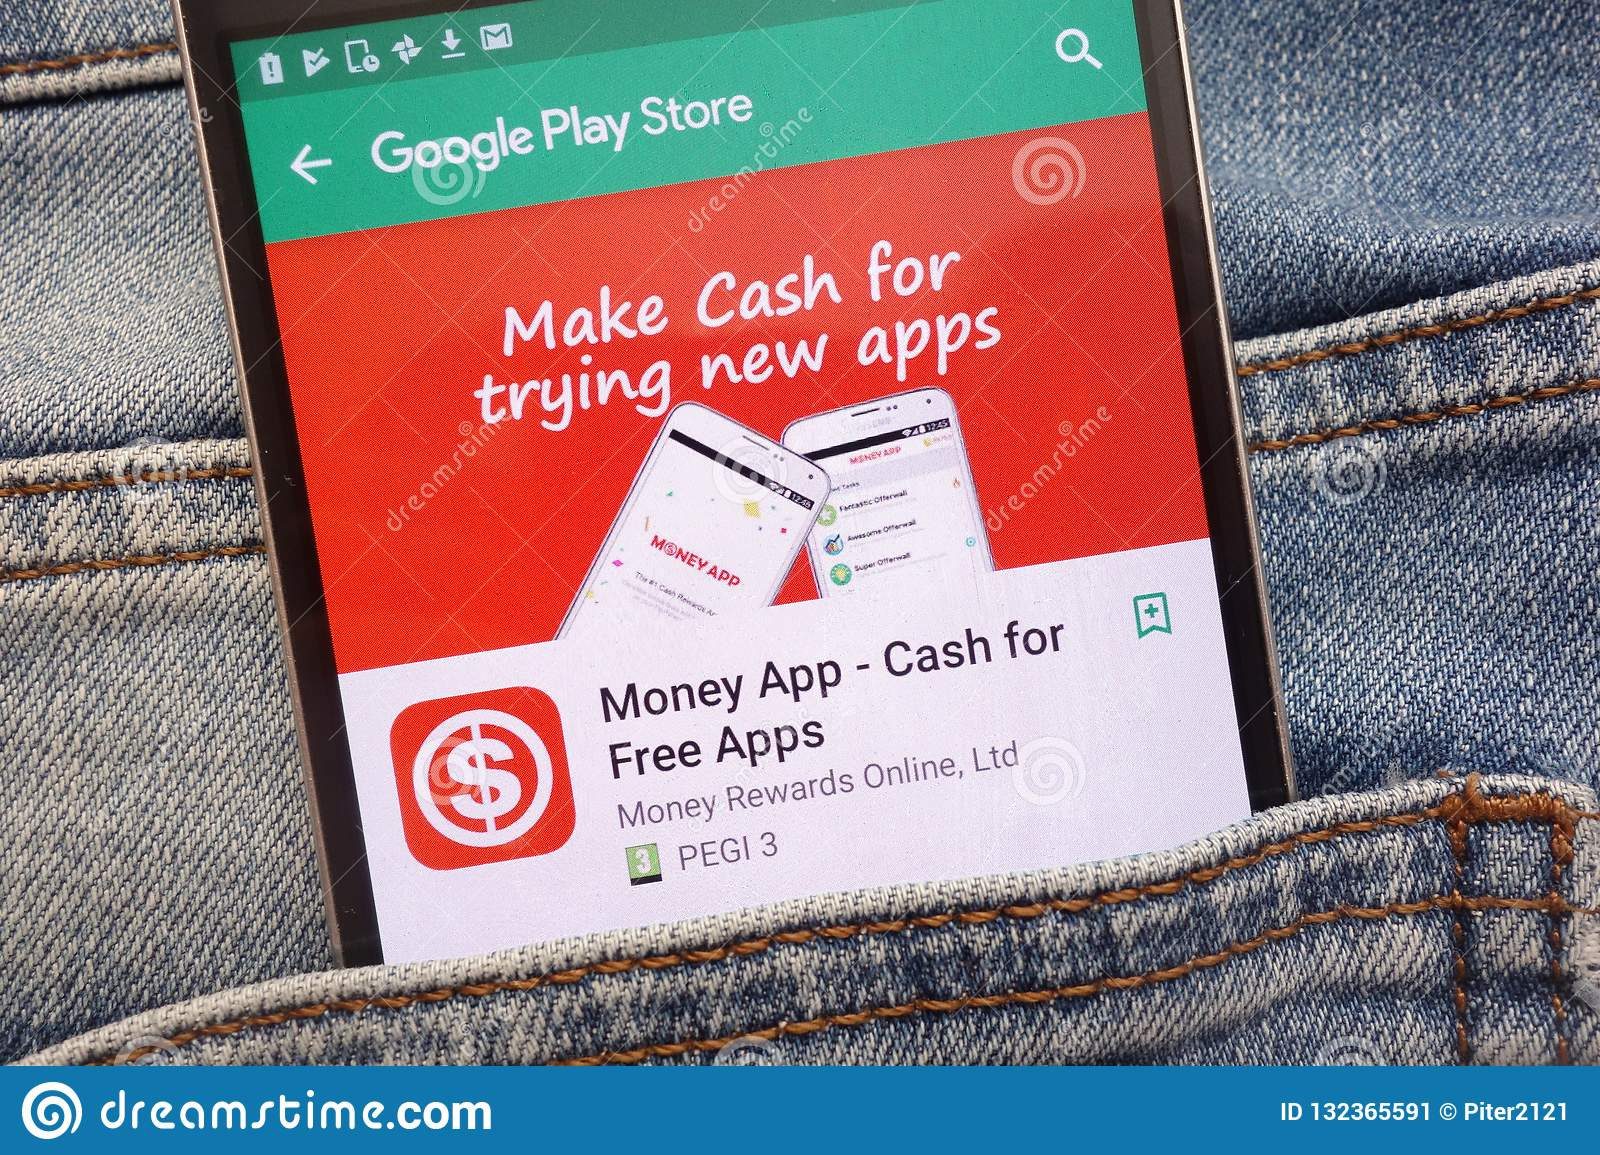 Money App - Cash For Free Apps On Google Play Store Website